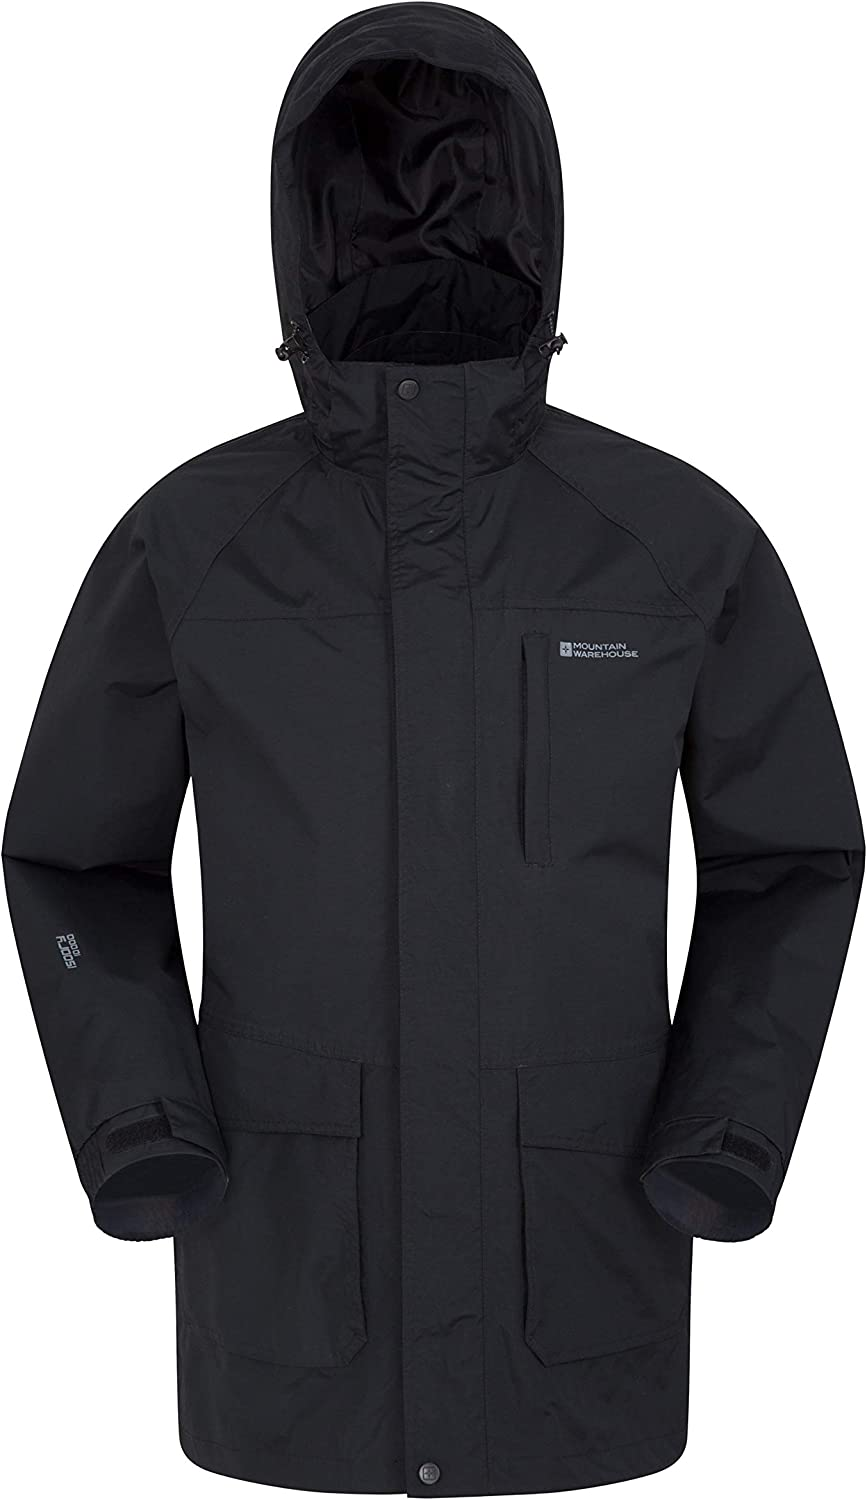 Quick Drying Coat -for Travelling Black X-Small Mountain Warehouse Glacier II Long Mens Waterproof Jacket Breathable Winter Jacket Taped Seams Rain Coat Detachable Hood